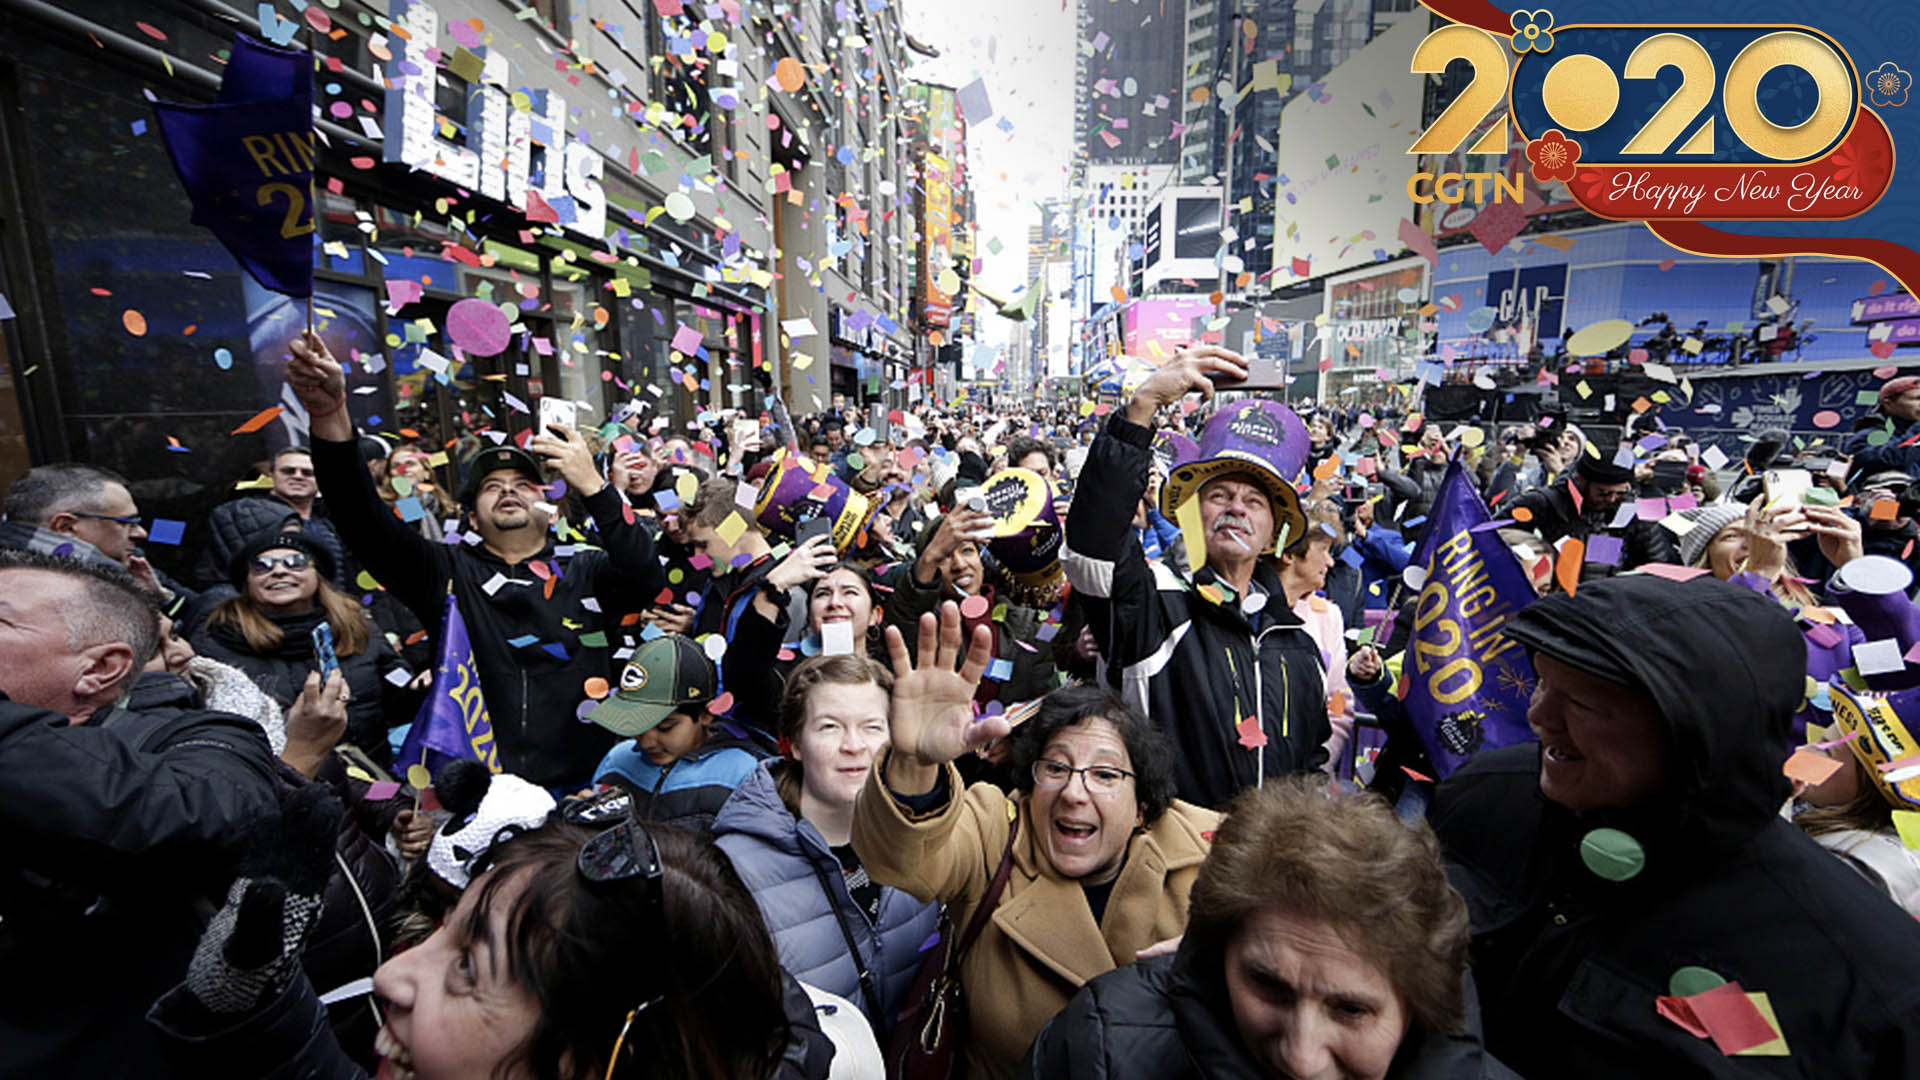 Live: New York City rings in 2020 with ball drop in Times ...